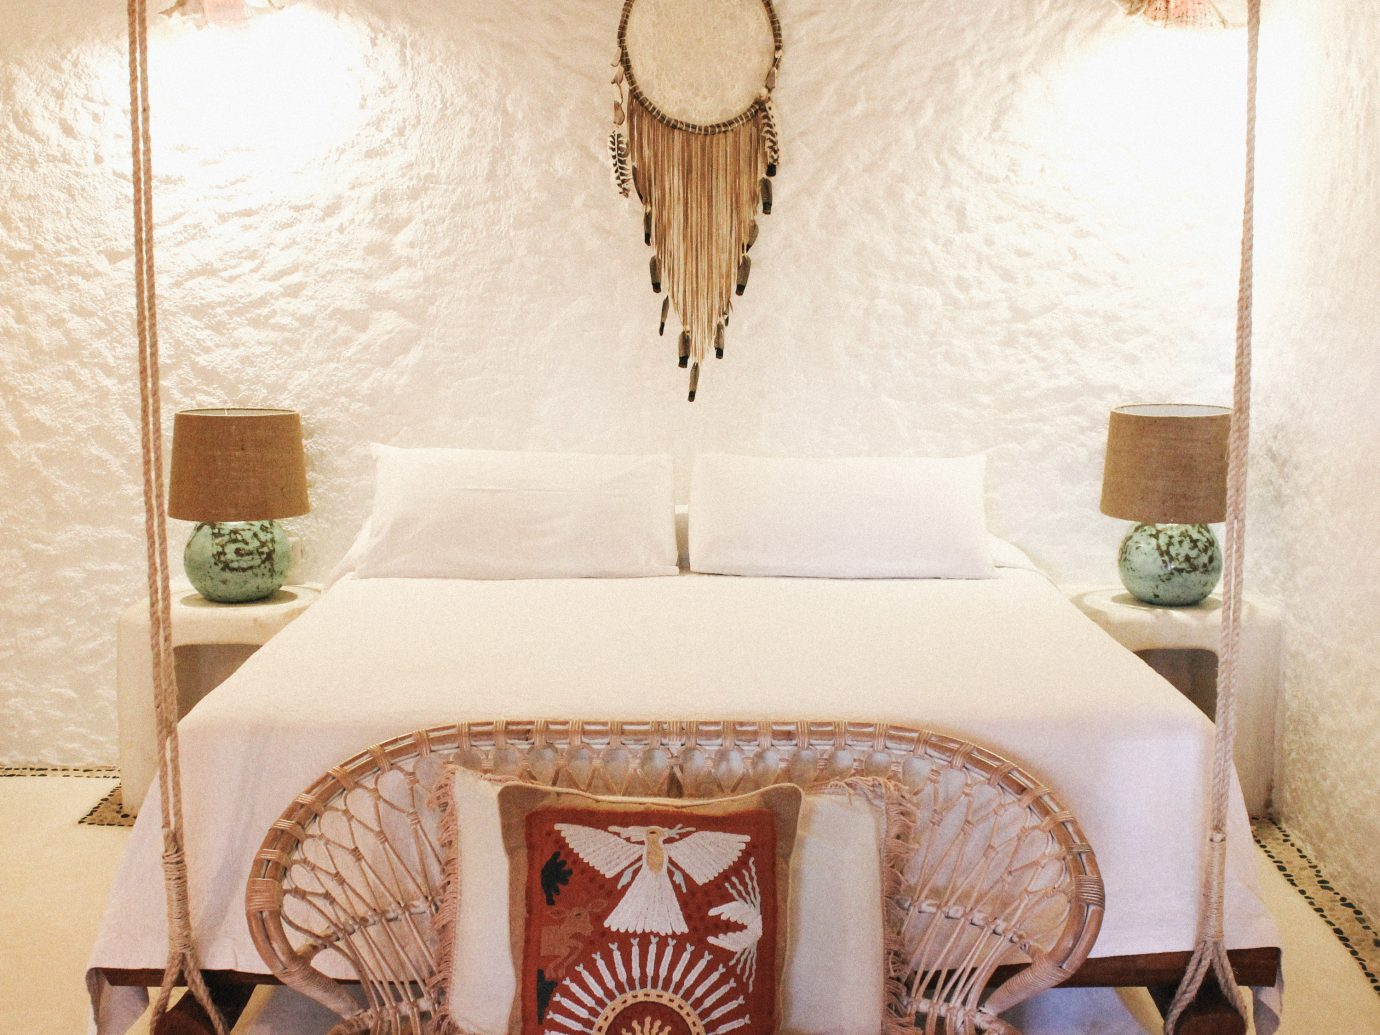 Beach Honeymoon Hotels Mexico Romance Tulum wall indoor room furniture interior design bed frame bed Suite Bedroom ceiling mattress product textile floor bedding flooring bed sheet table